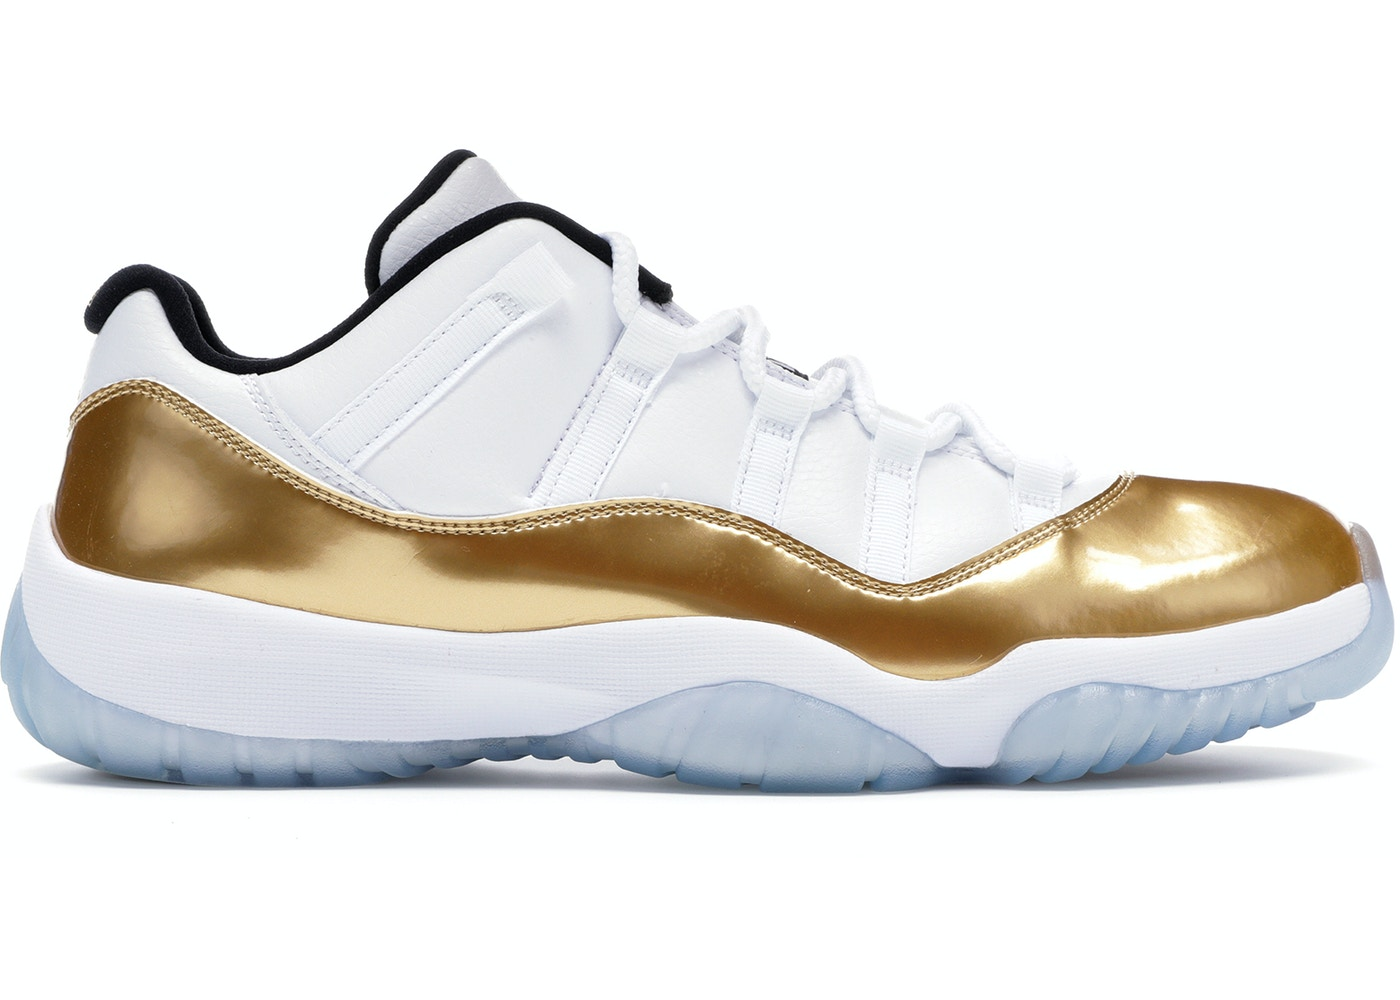 b8a62e2b4eb Jordan 11 Retro Low Closing Ceremony - 528895-103